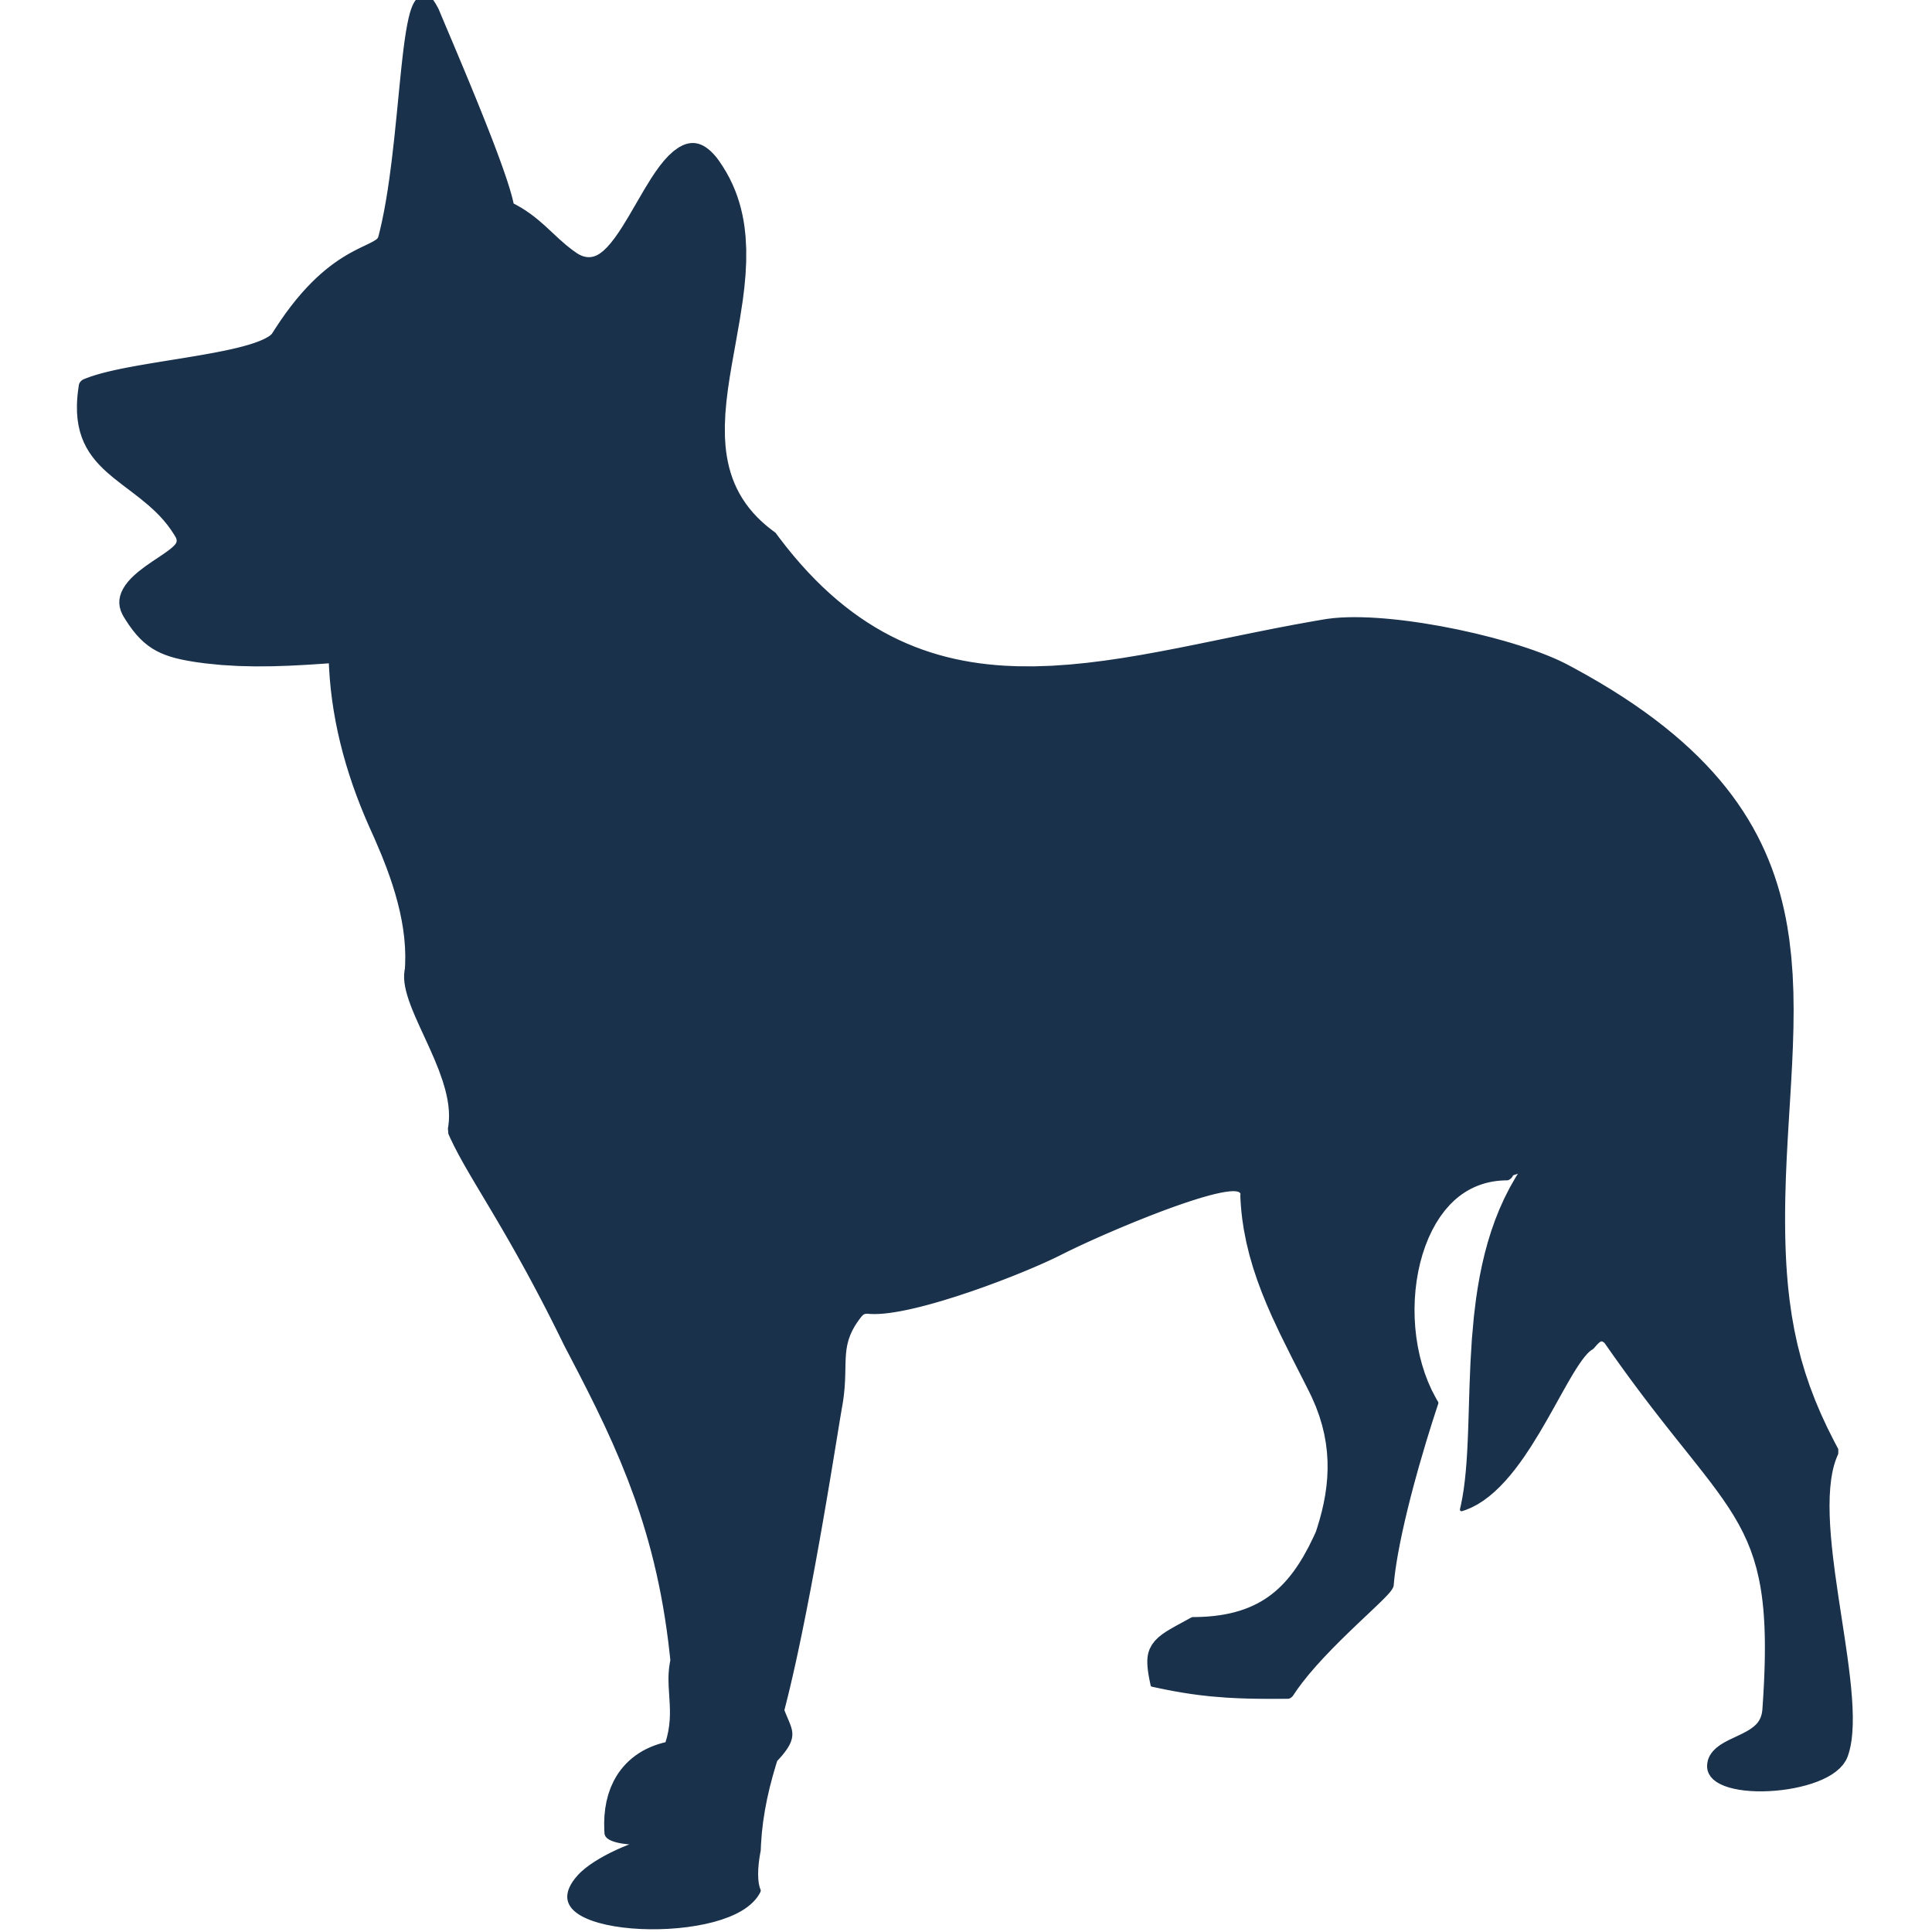 Australian cattle dog clipart royalty free library Australian Cattle Dog Australian Kelpie Australian Stumpy Tail ... royalty free library